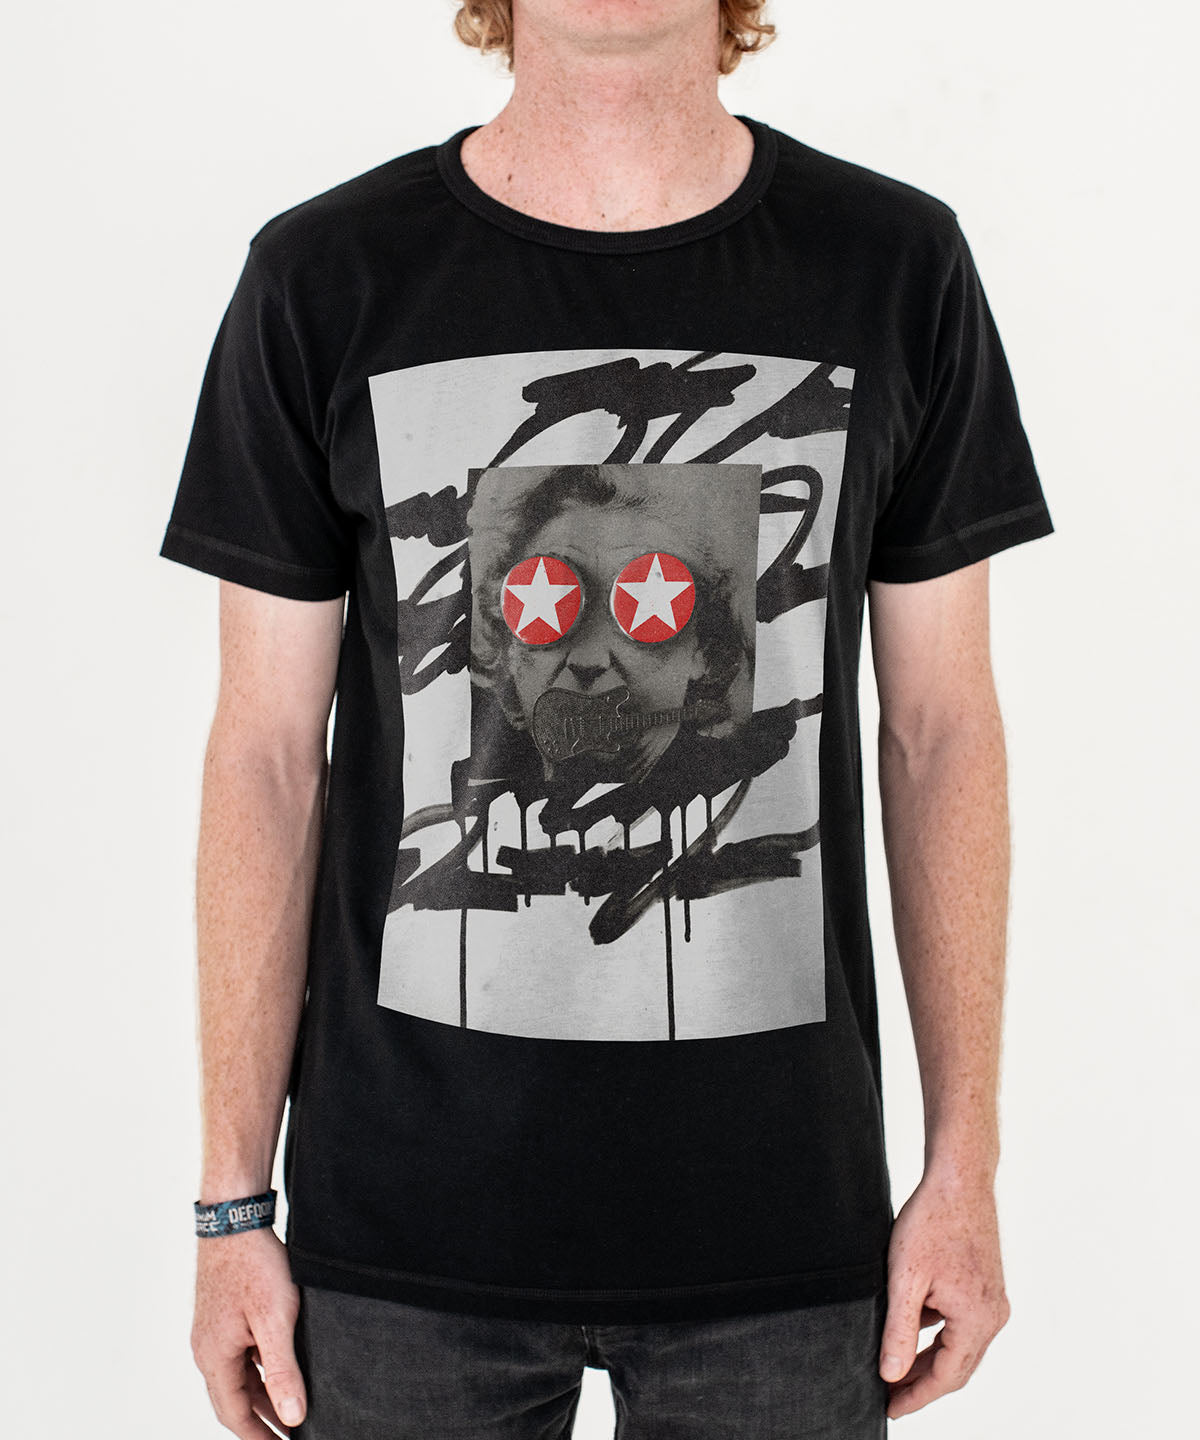 SheOne 'Star Caps' T-Shirt Black